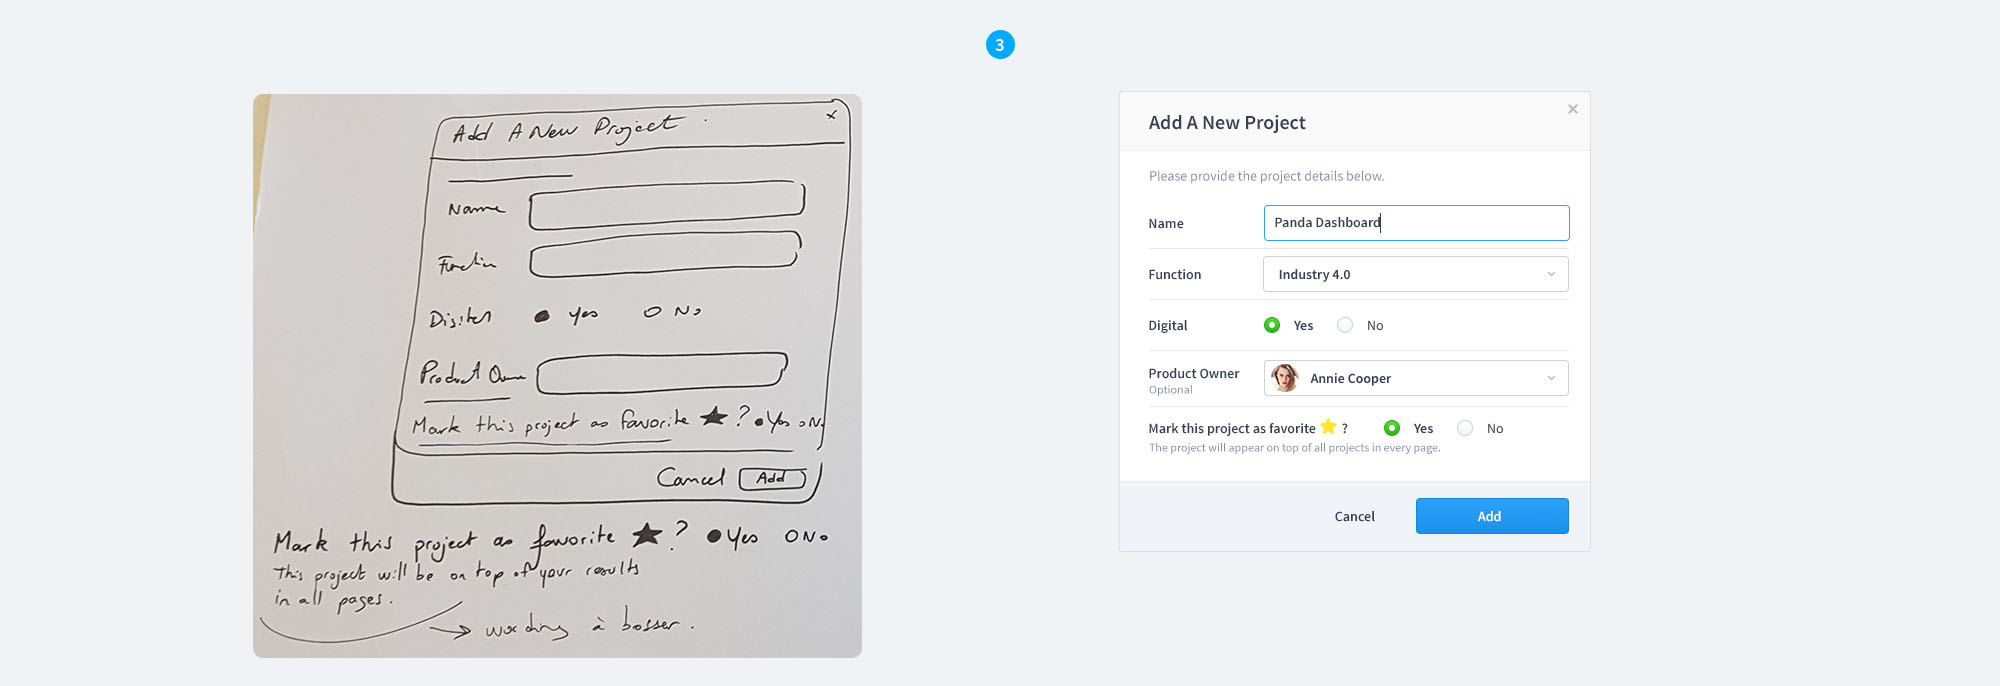 Add-a-new-project-UX-wireframes-UI-mockup